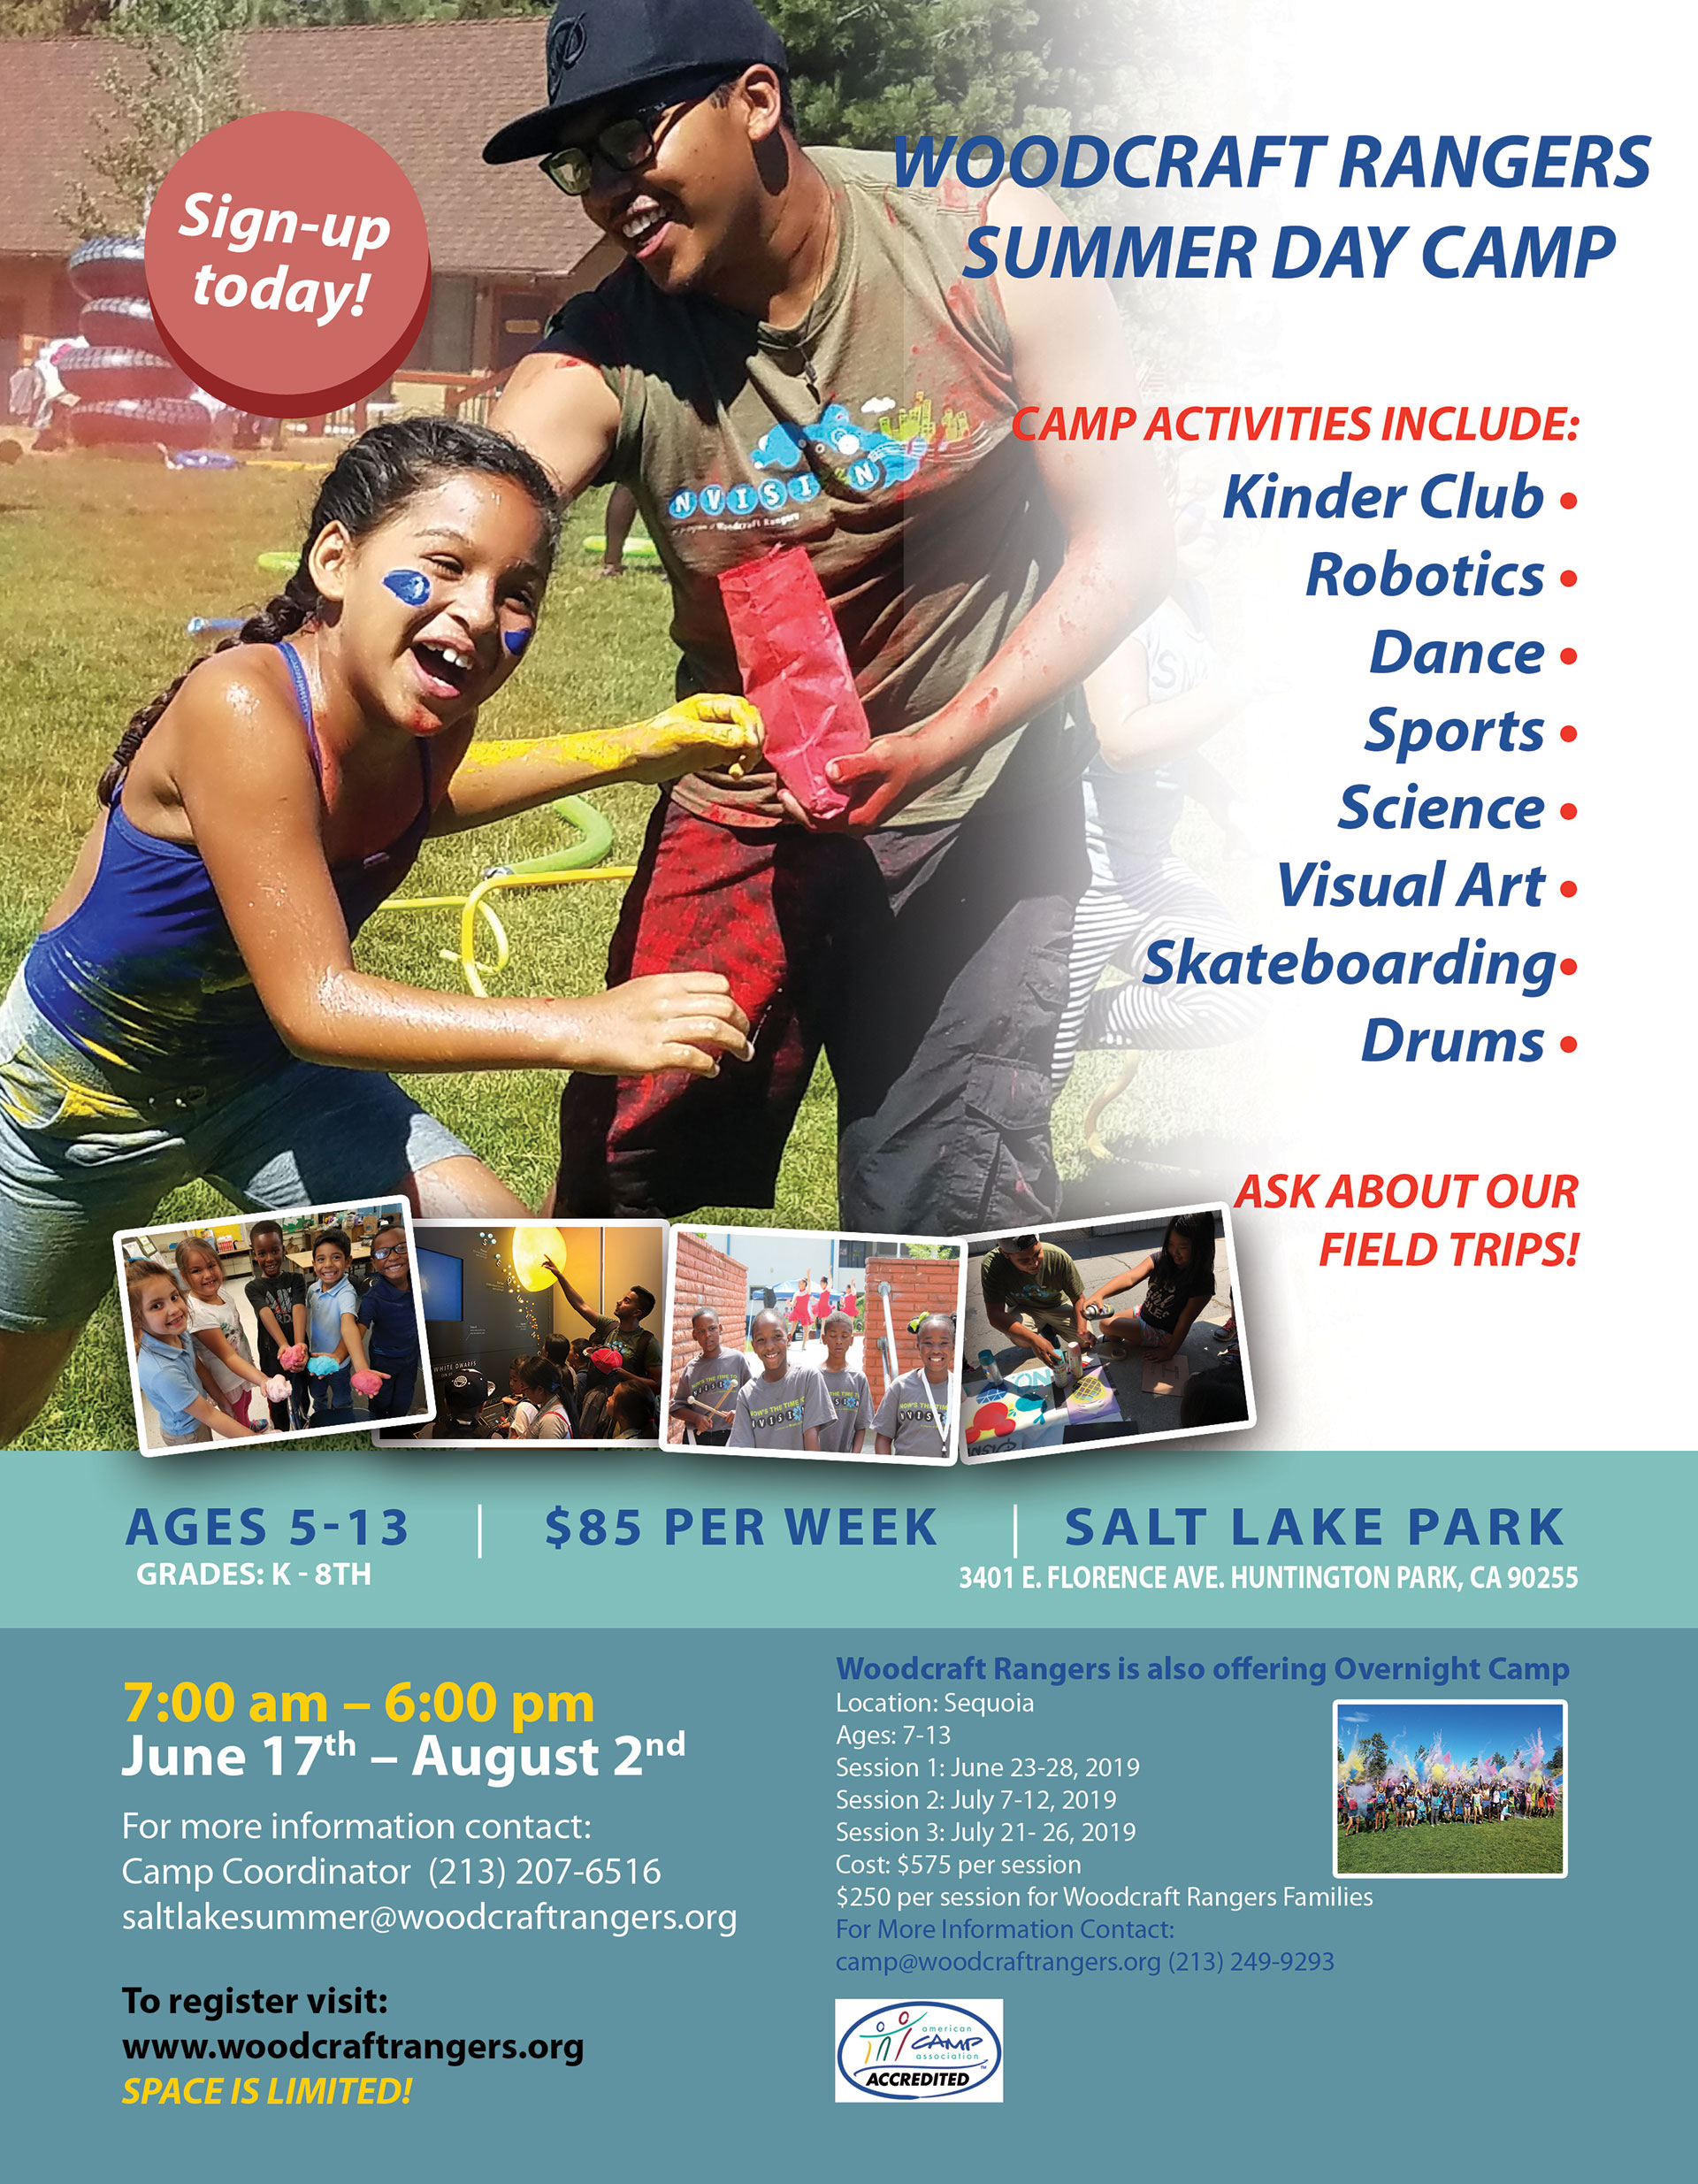 Summer Day Camps for Kids in Los Angeles, CA | Woodcraft Rangers